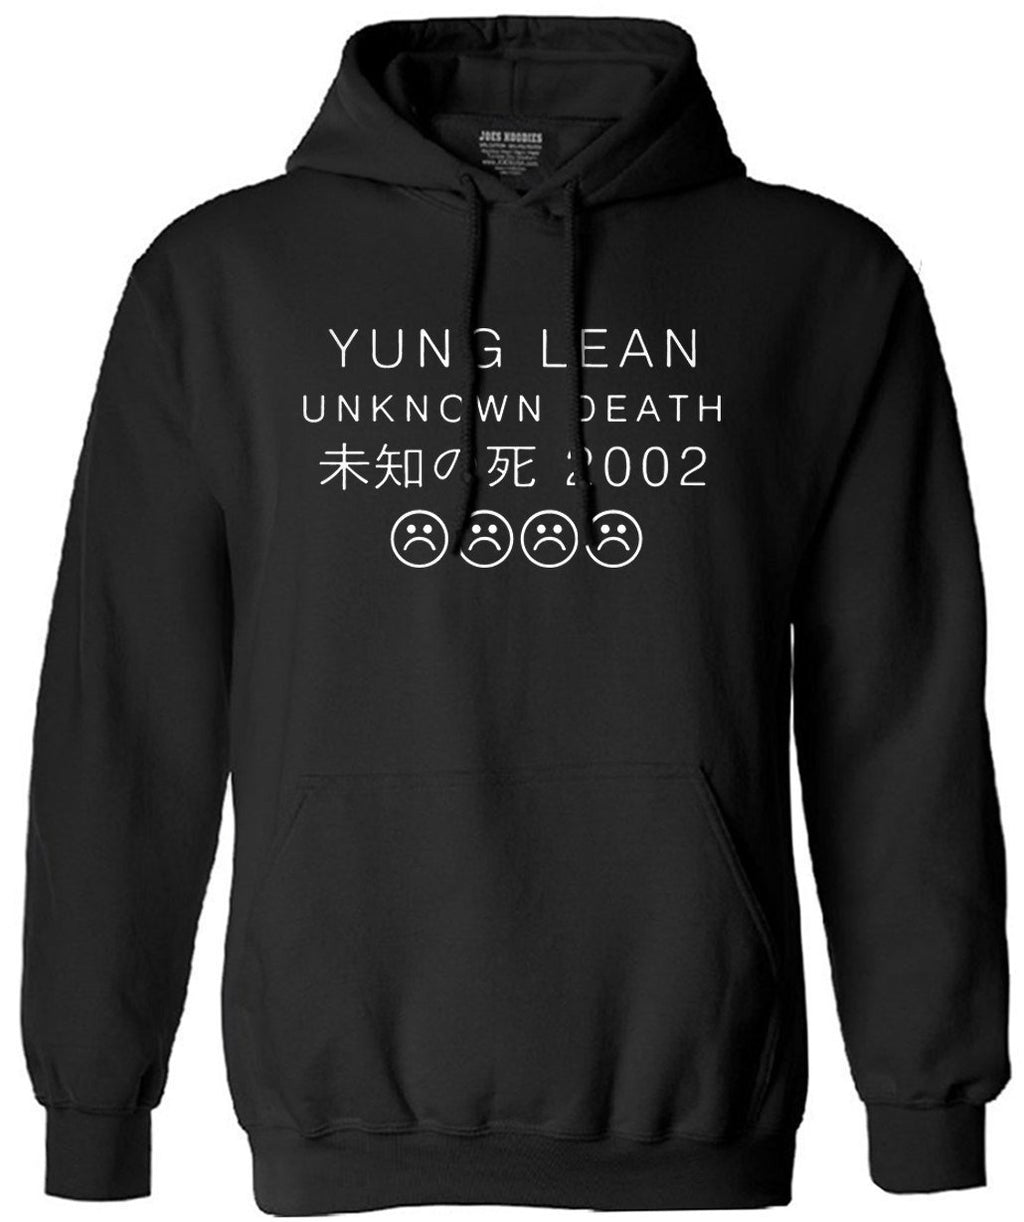 YUNG LEAN UNKNOWN DEATH Sad Boys sweatshirt Men Cotton long Sleeve autumndresskily-dresskily